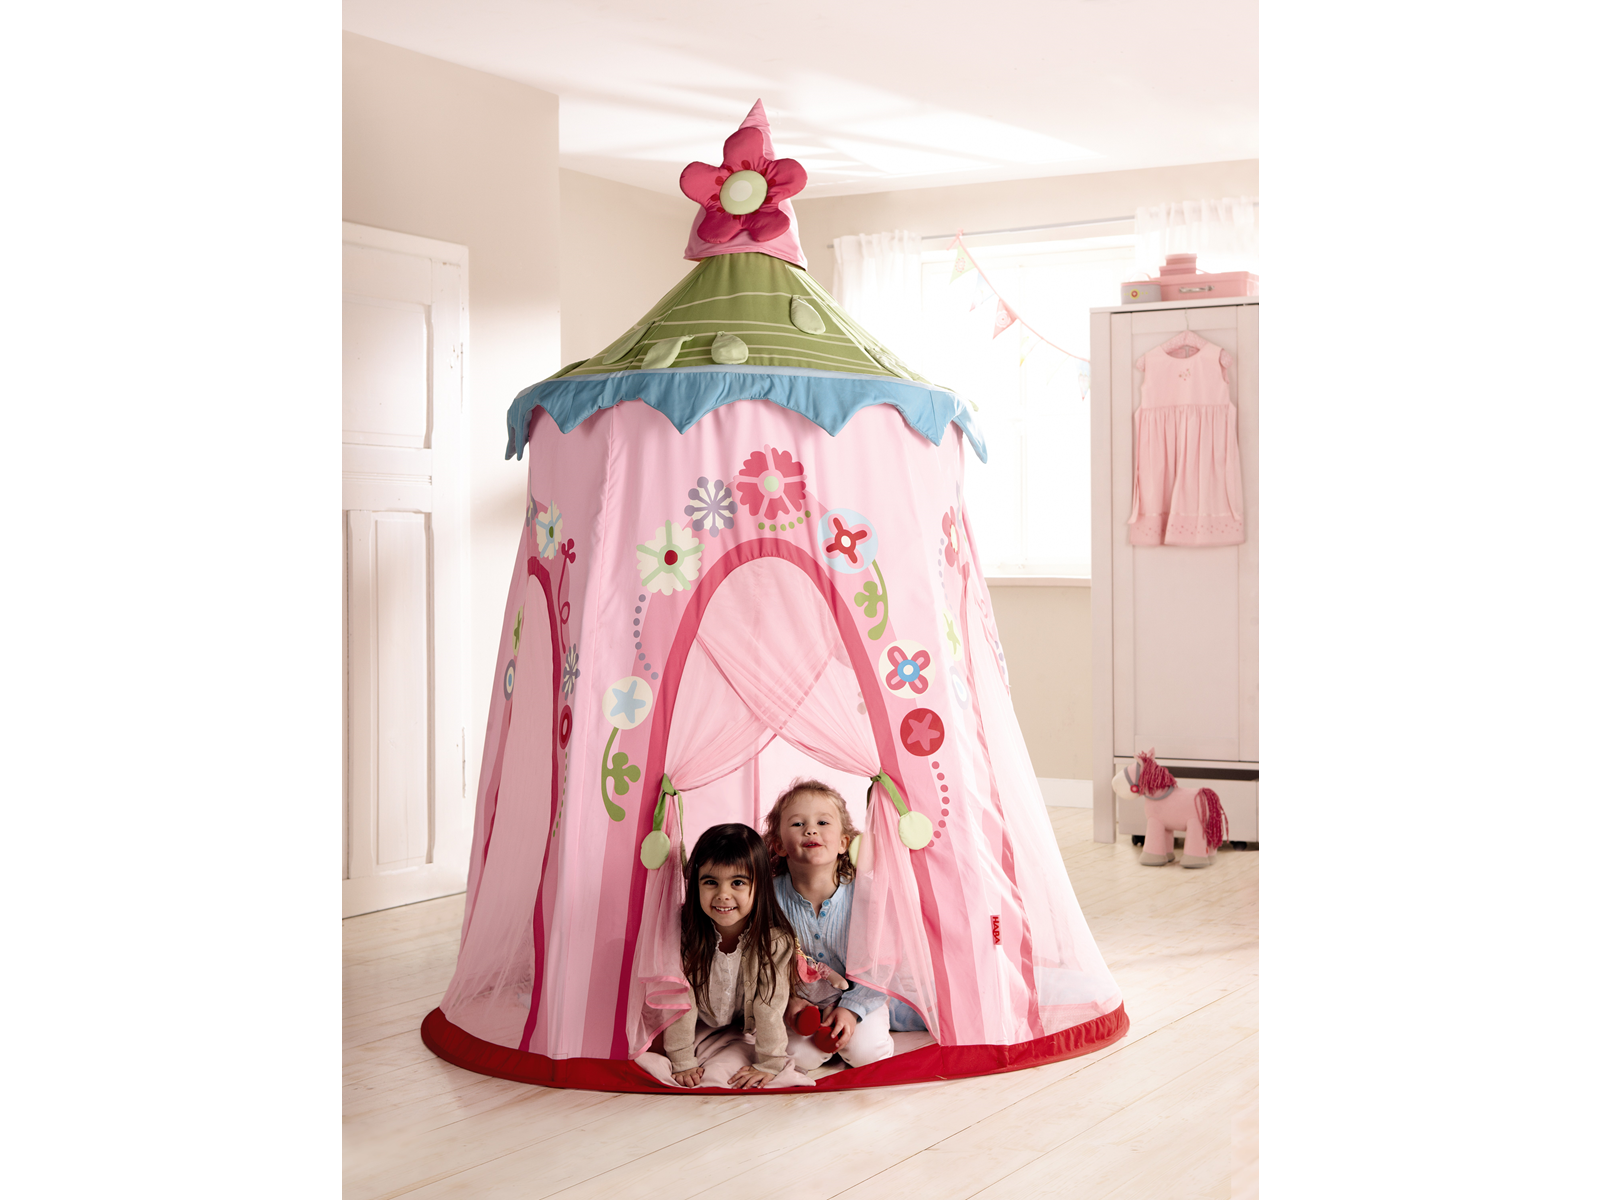 Haba Floral Wreath Play Tent - Playhouse of Dreams - 1 ...  sc 1 st  Playhouse of Dreams & Haba Rose Fairy Play Tent - Buy Online - Playhouse of Dreams